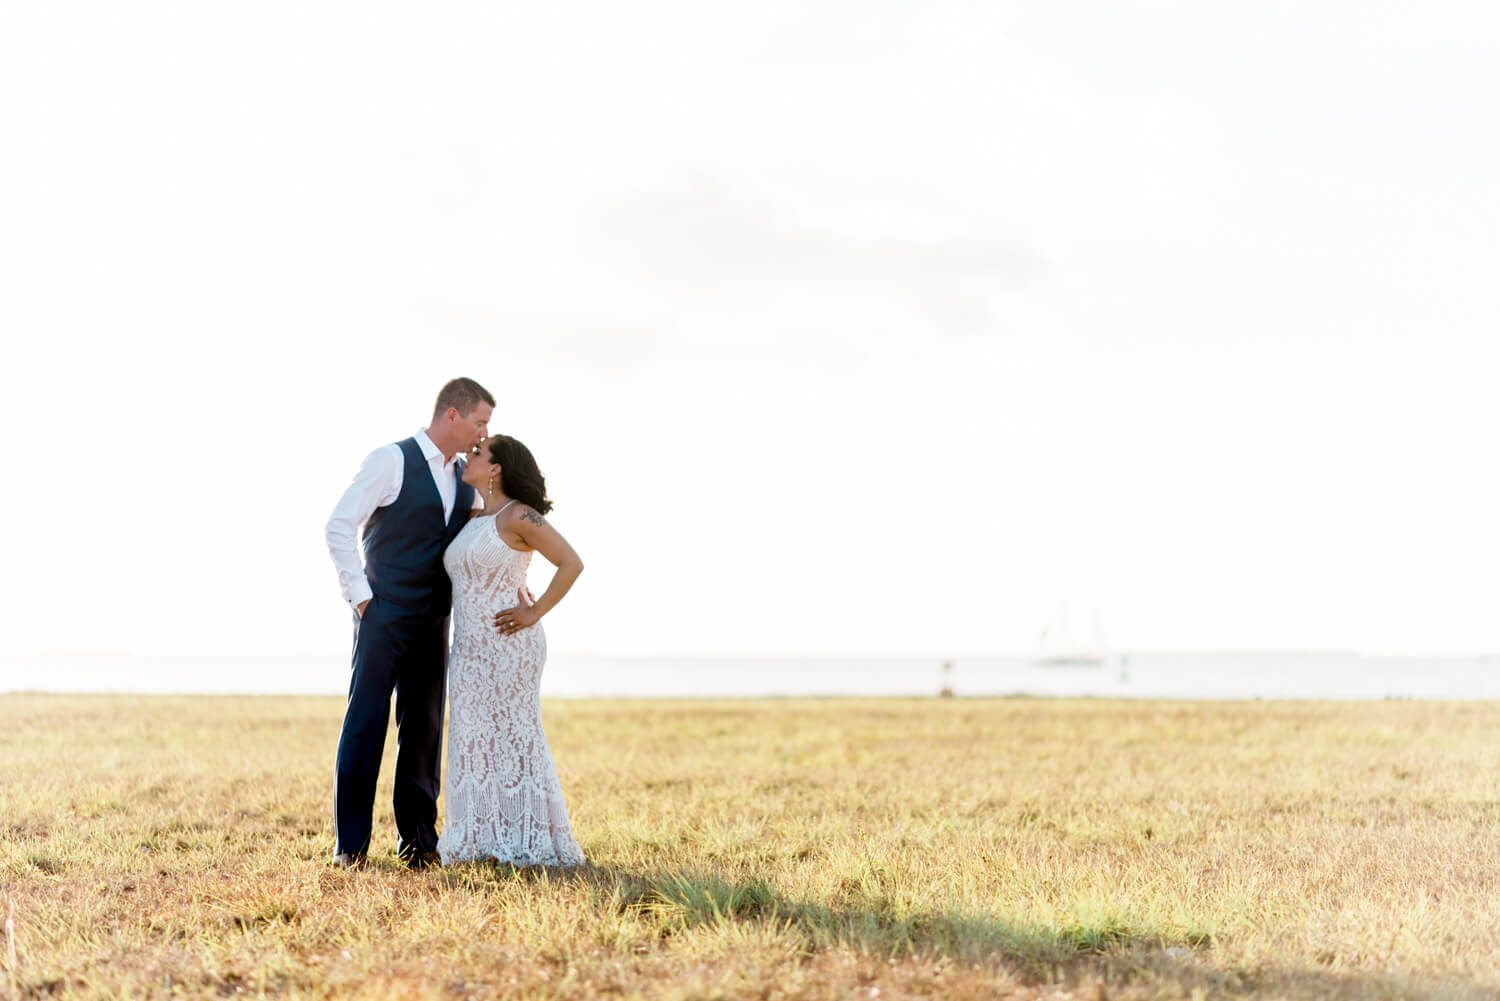 Jessica Ed Key West Engagement Photography 5 1 - Jessica & Ed - Key West Engagement Photographer - Fort Zachary Taylor